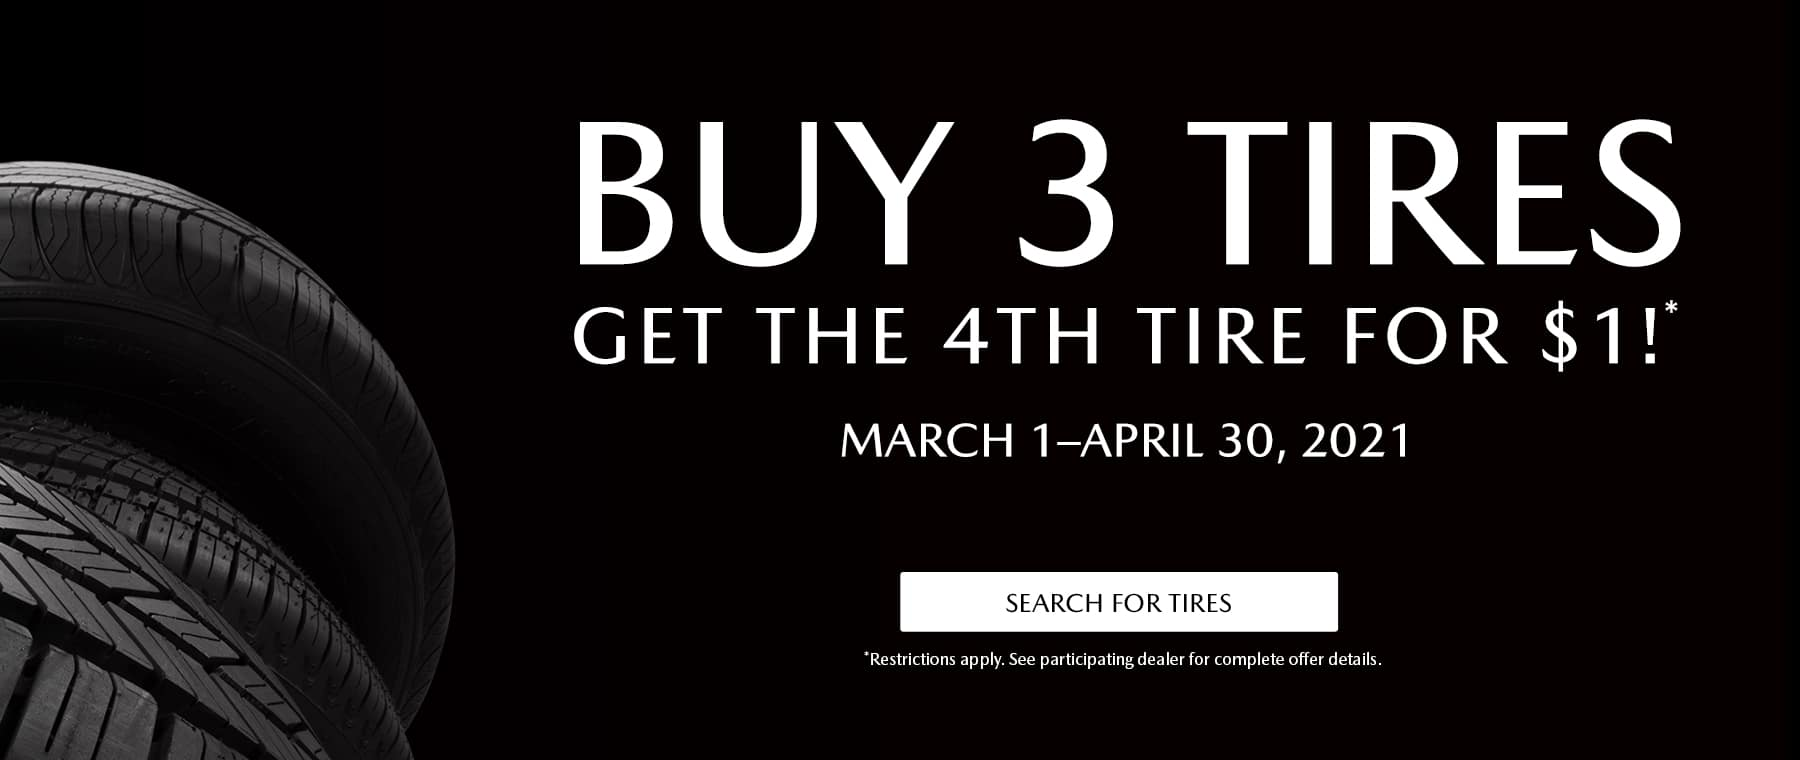 Buy 3 tires get the 4th tire for $1